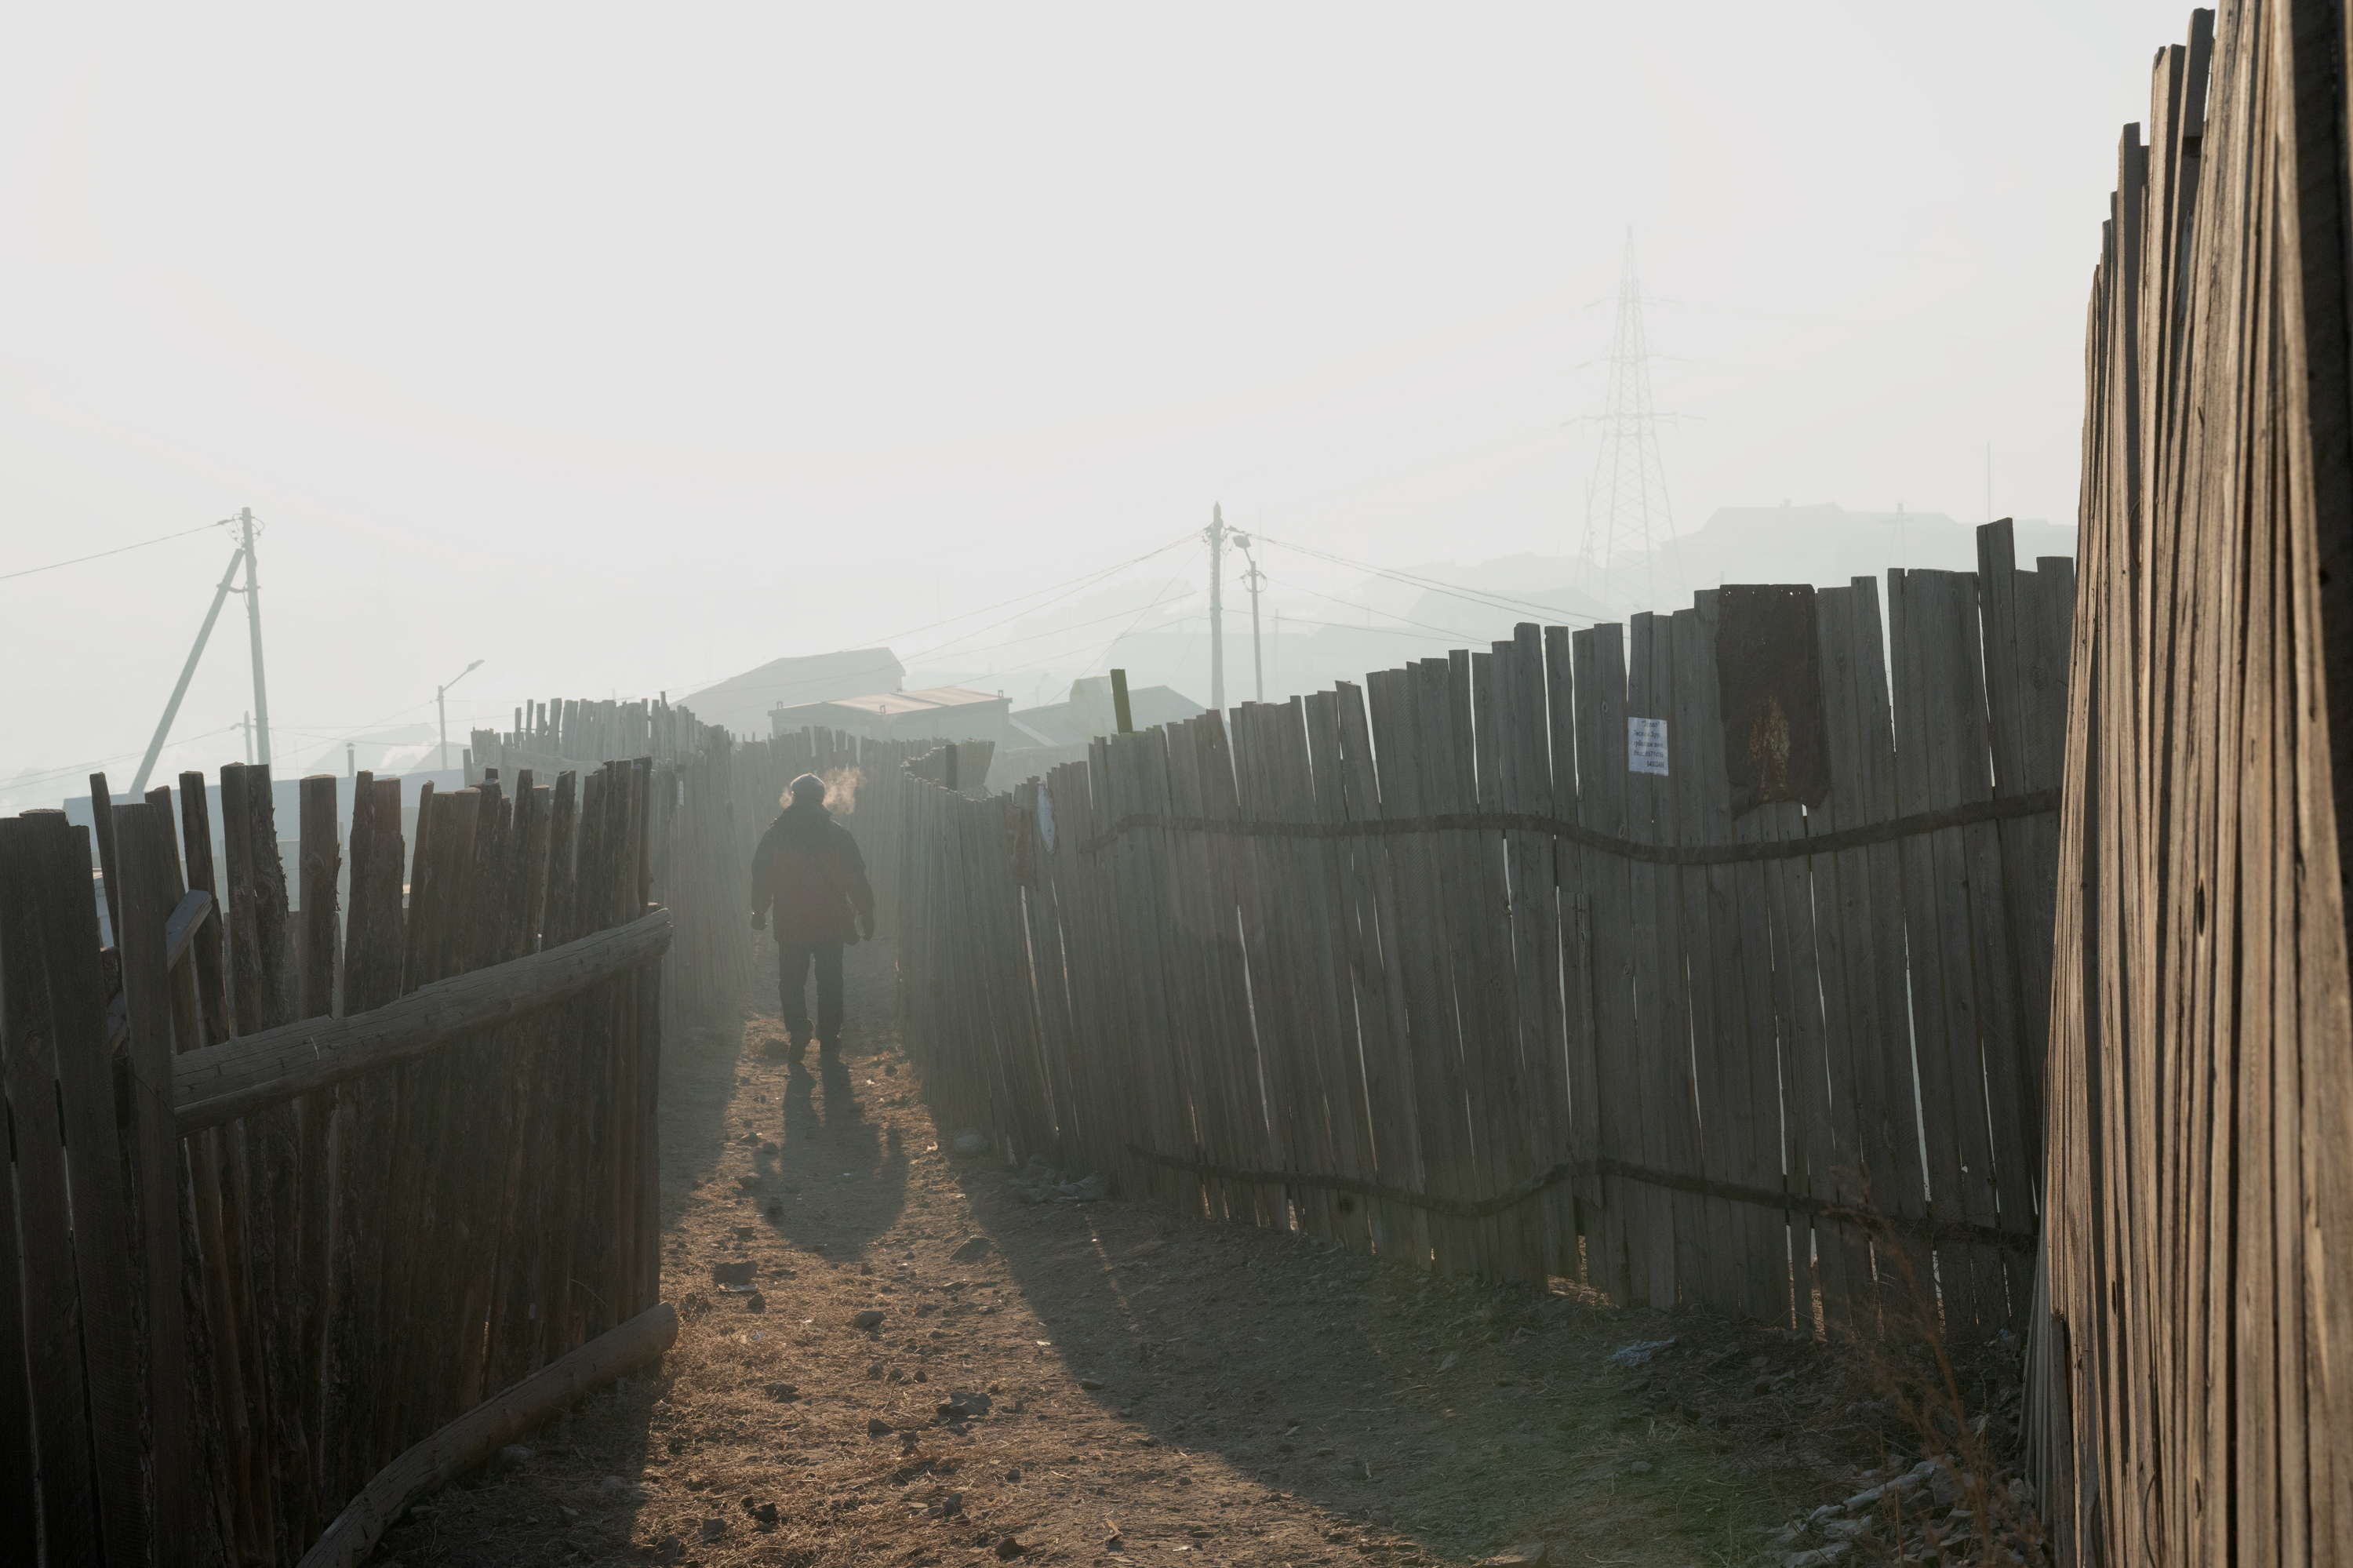 Mongolia's Capital Banned Coal To Fix Its Pollution Problem